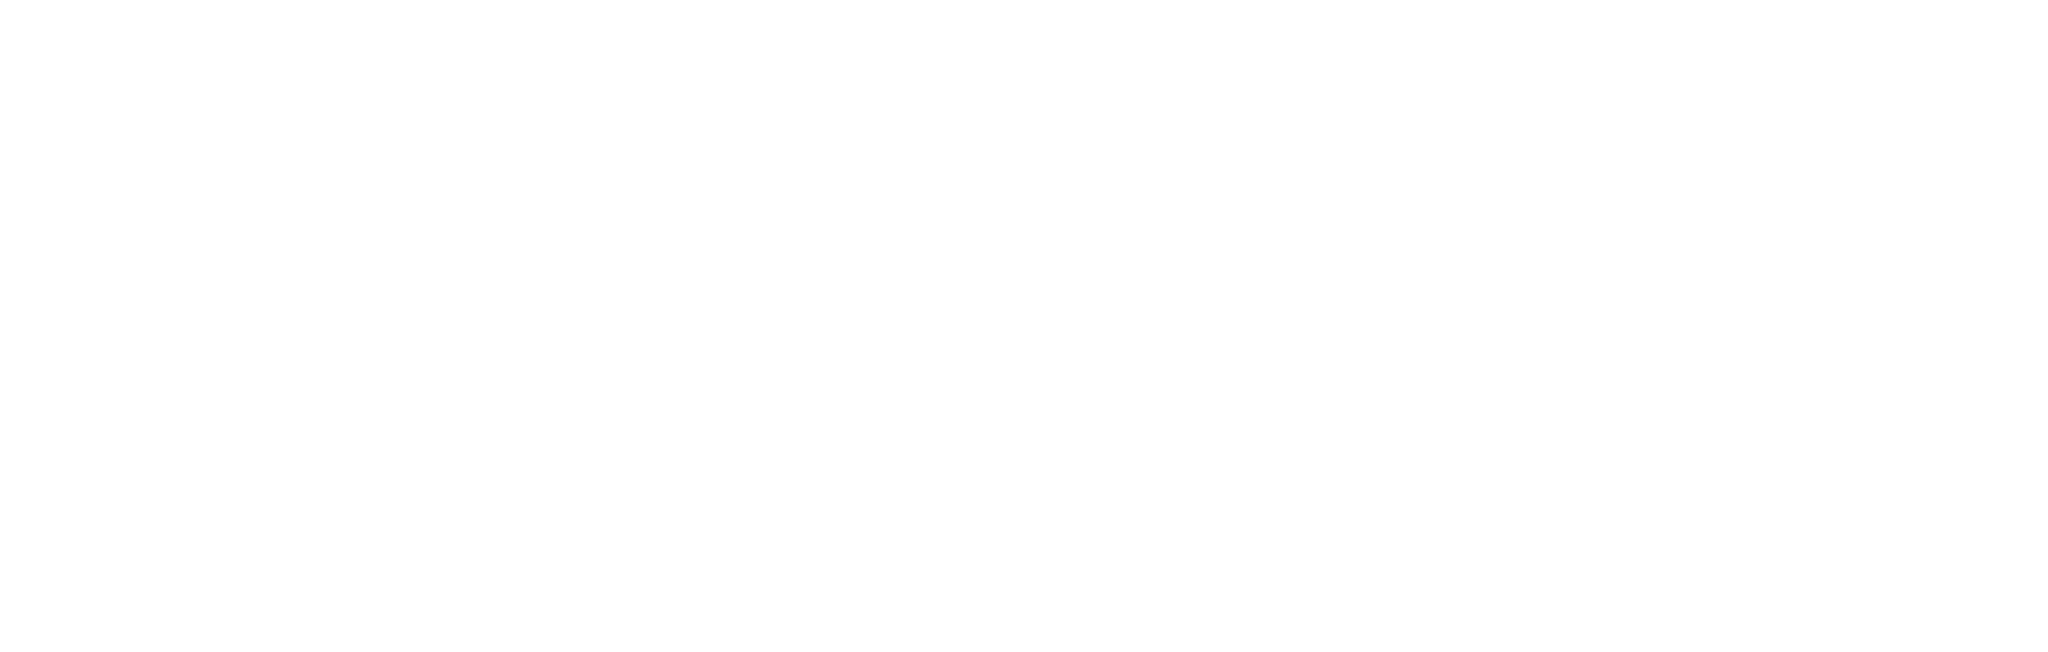 OutMatch Insight: Live!